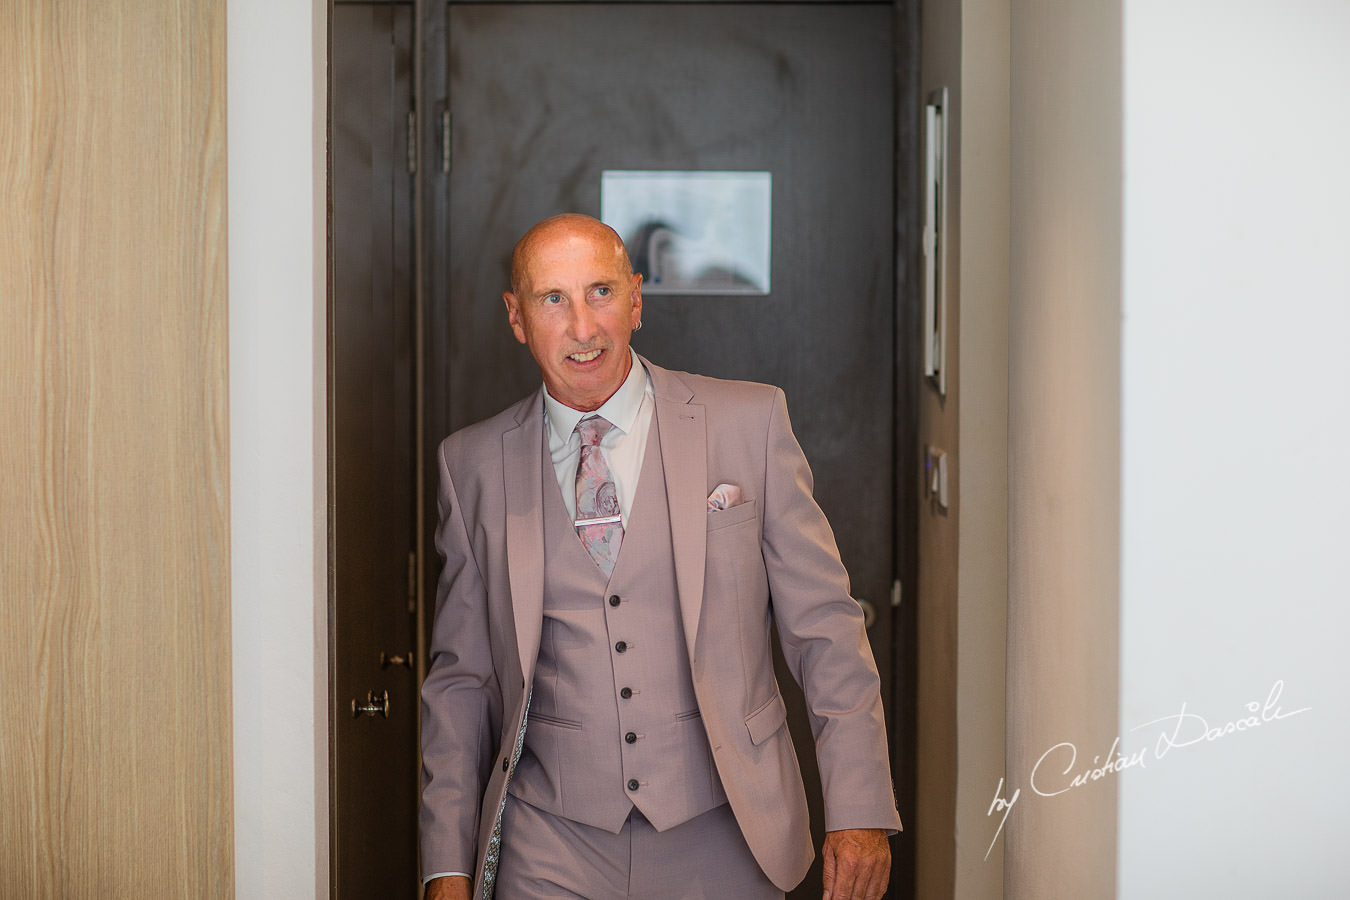 Father of the bride just before meeting the bride, moments captured by Cristian Dascalu during an elegant Aphrodite Hills Wedding in Cyprus.